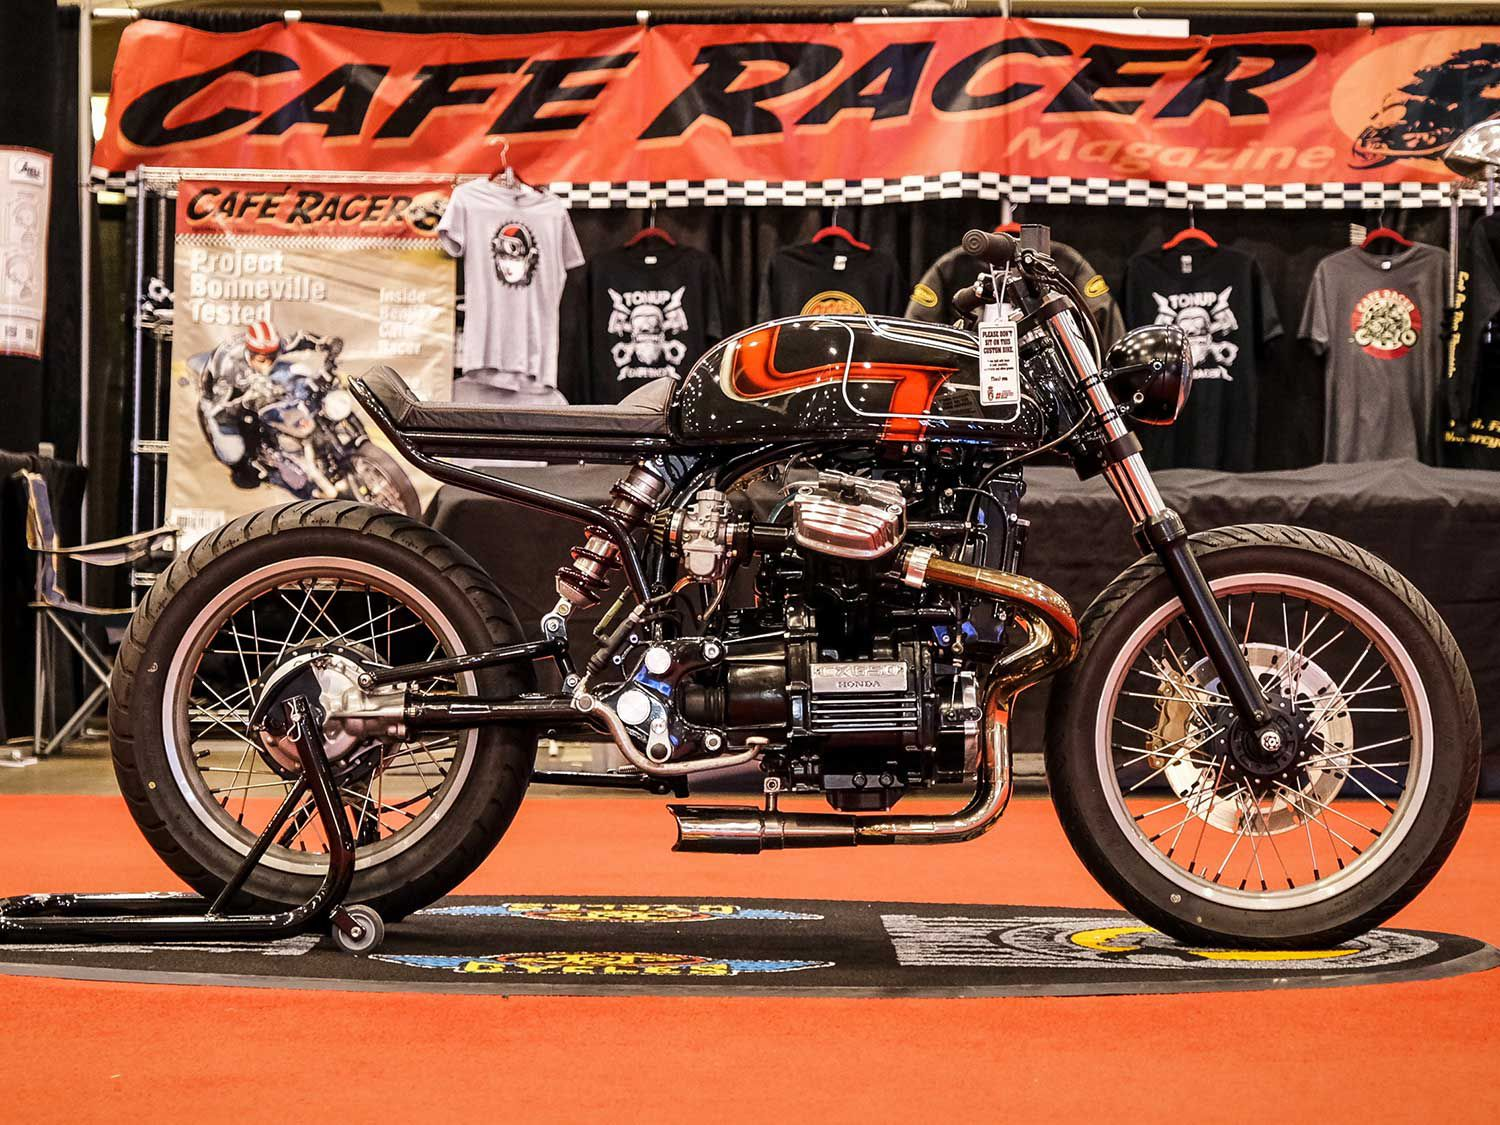 Winning the Custom Classic top prize at the Cleveland stop of the Ultimate Builder Custom Bike Show was Phil Hudson of 6th City Cycles with this 1980 Honda CX500. The stock CX500 engine was swapped with an '83 CX650 engine for extra horsepower, and Kacey Elkins applied the slick paint.